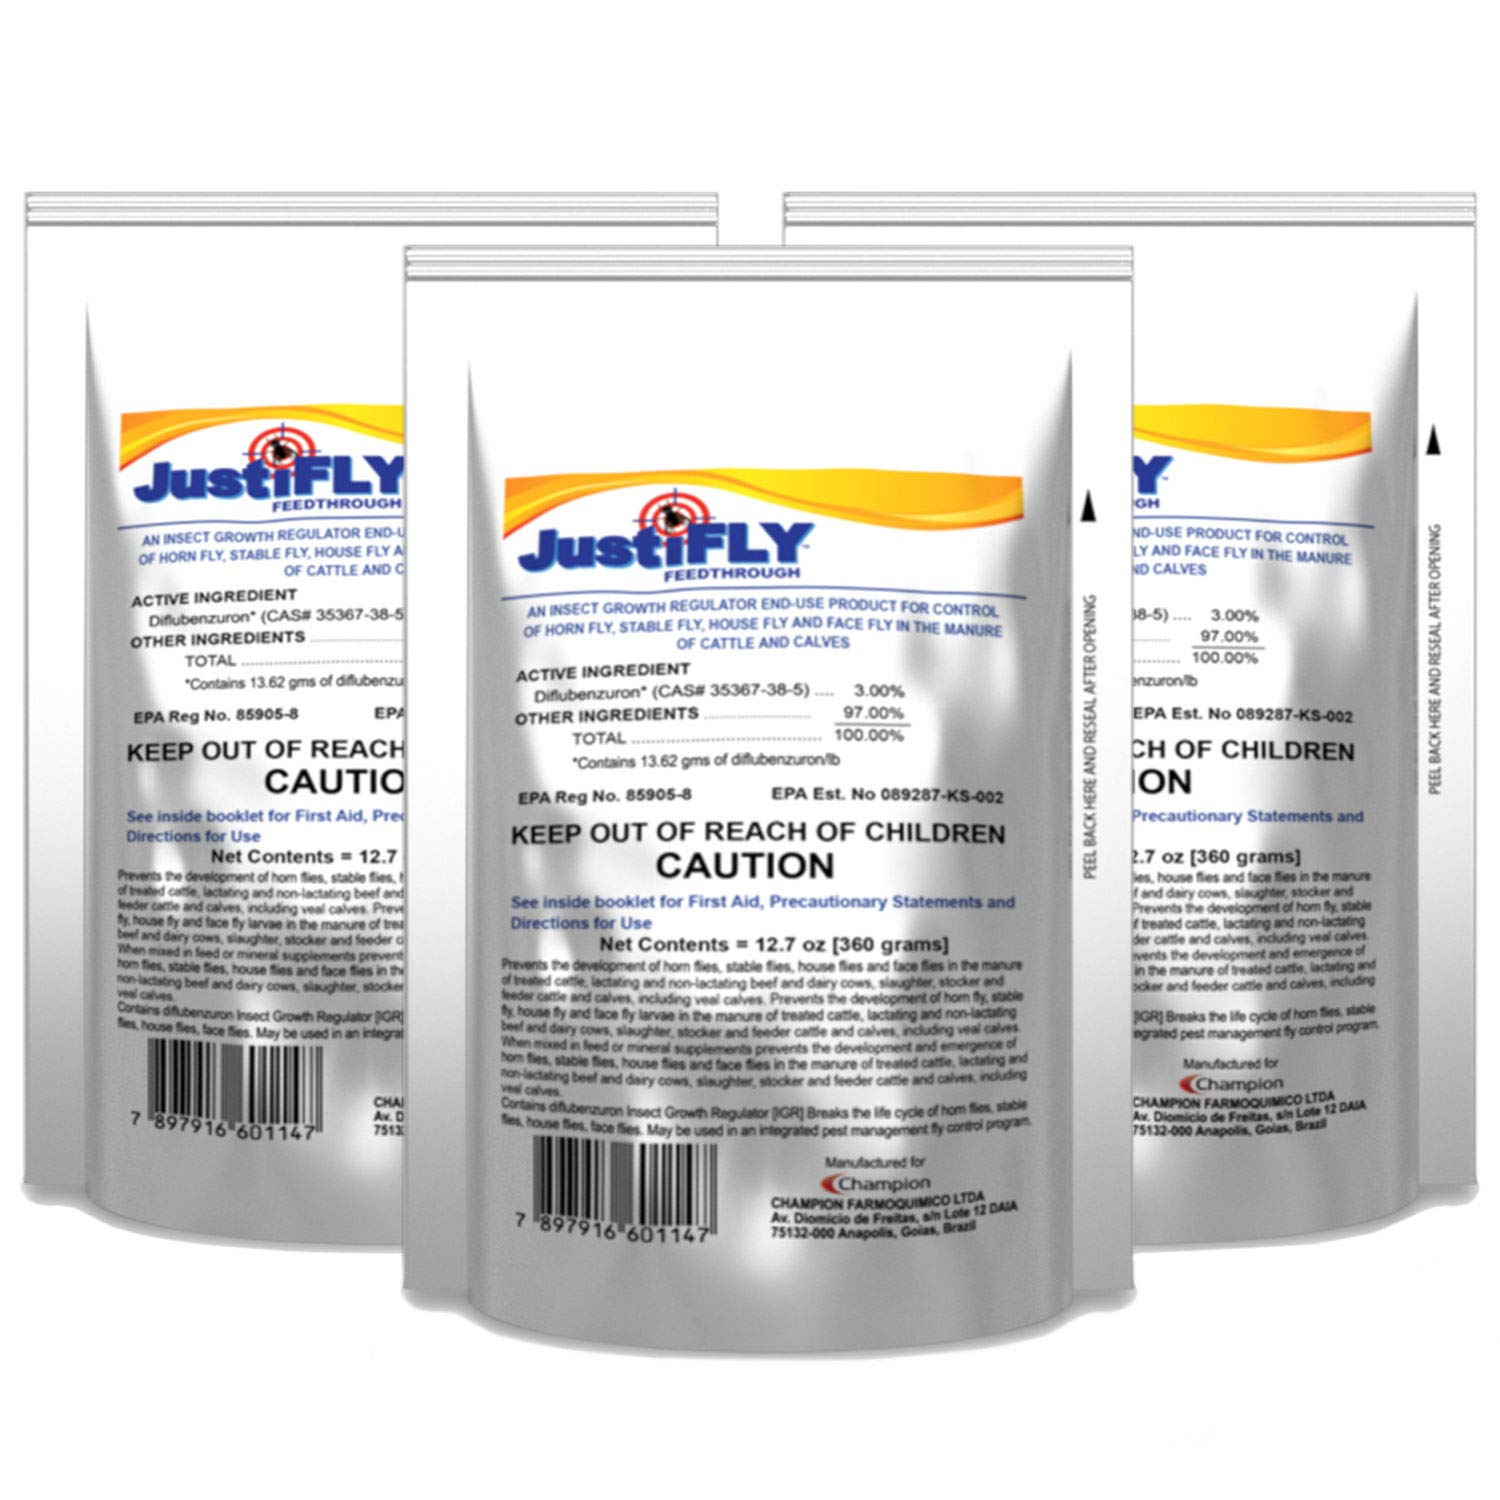 JustiFLY Champion USA Feedthrough Cattle Fly Control, 6 Pack   Non-Toxic Larvicide. Controls All Four Fly Species That Affect Cattle. Over 50 Million Head Treated